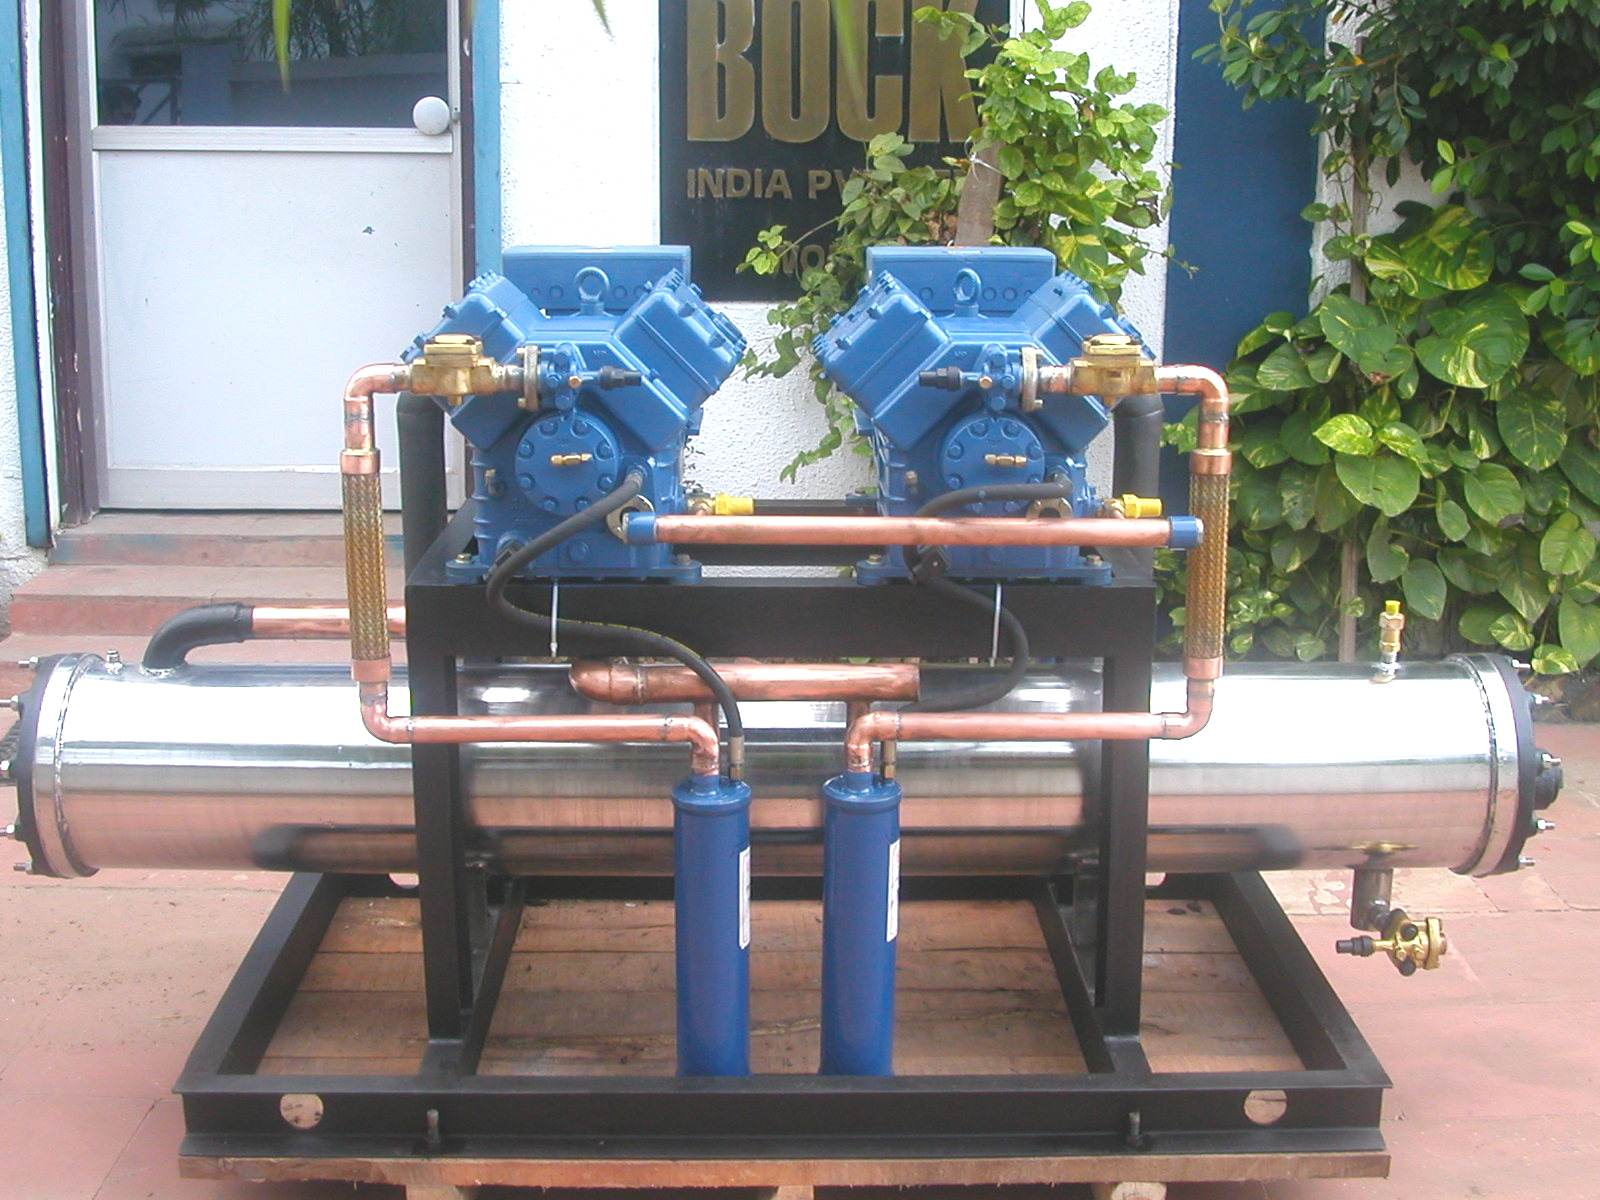 44 Special Water Cooled DUPLEX CONDENSING UNIT #2A70A1